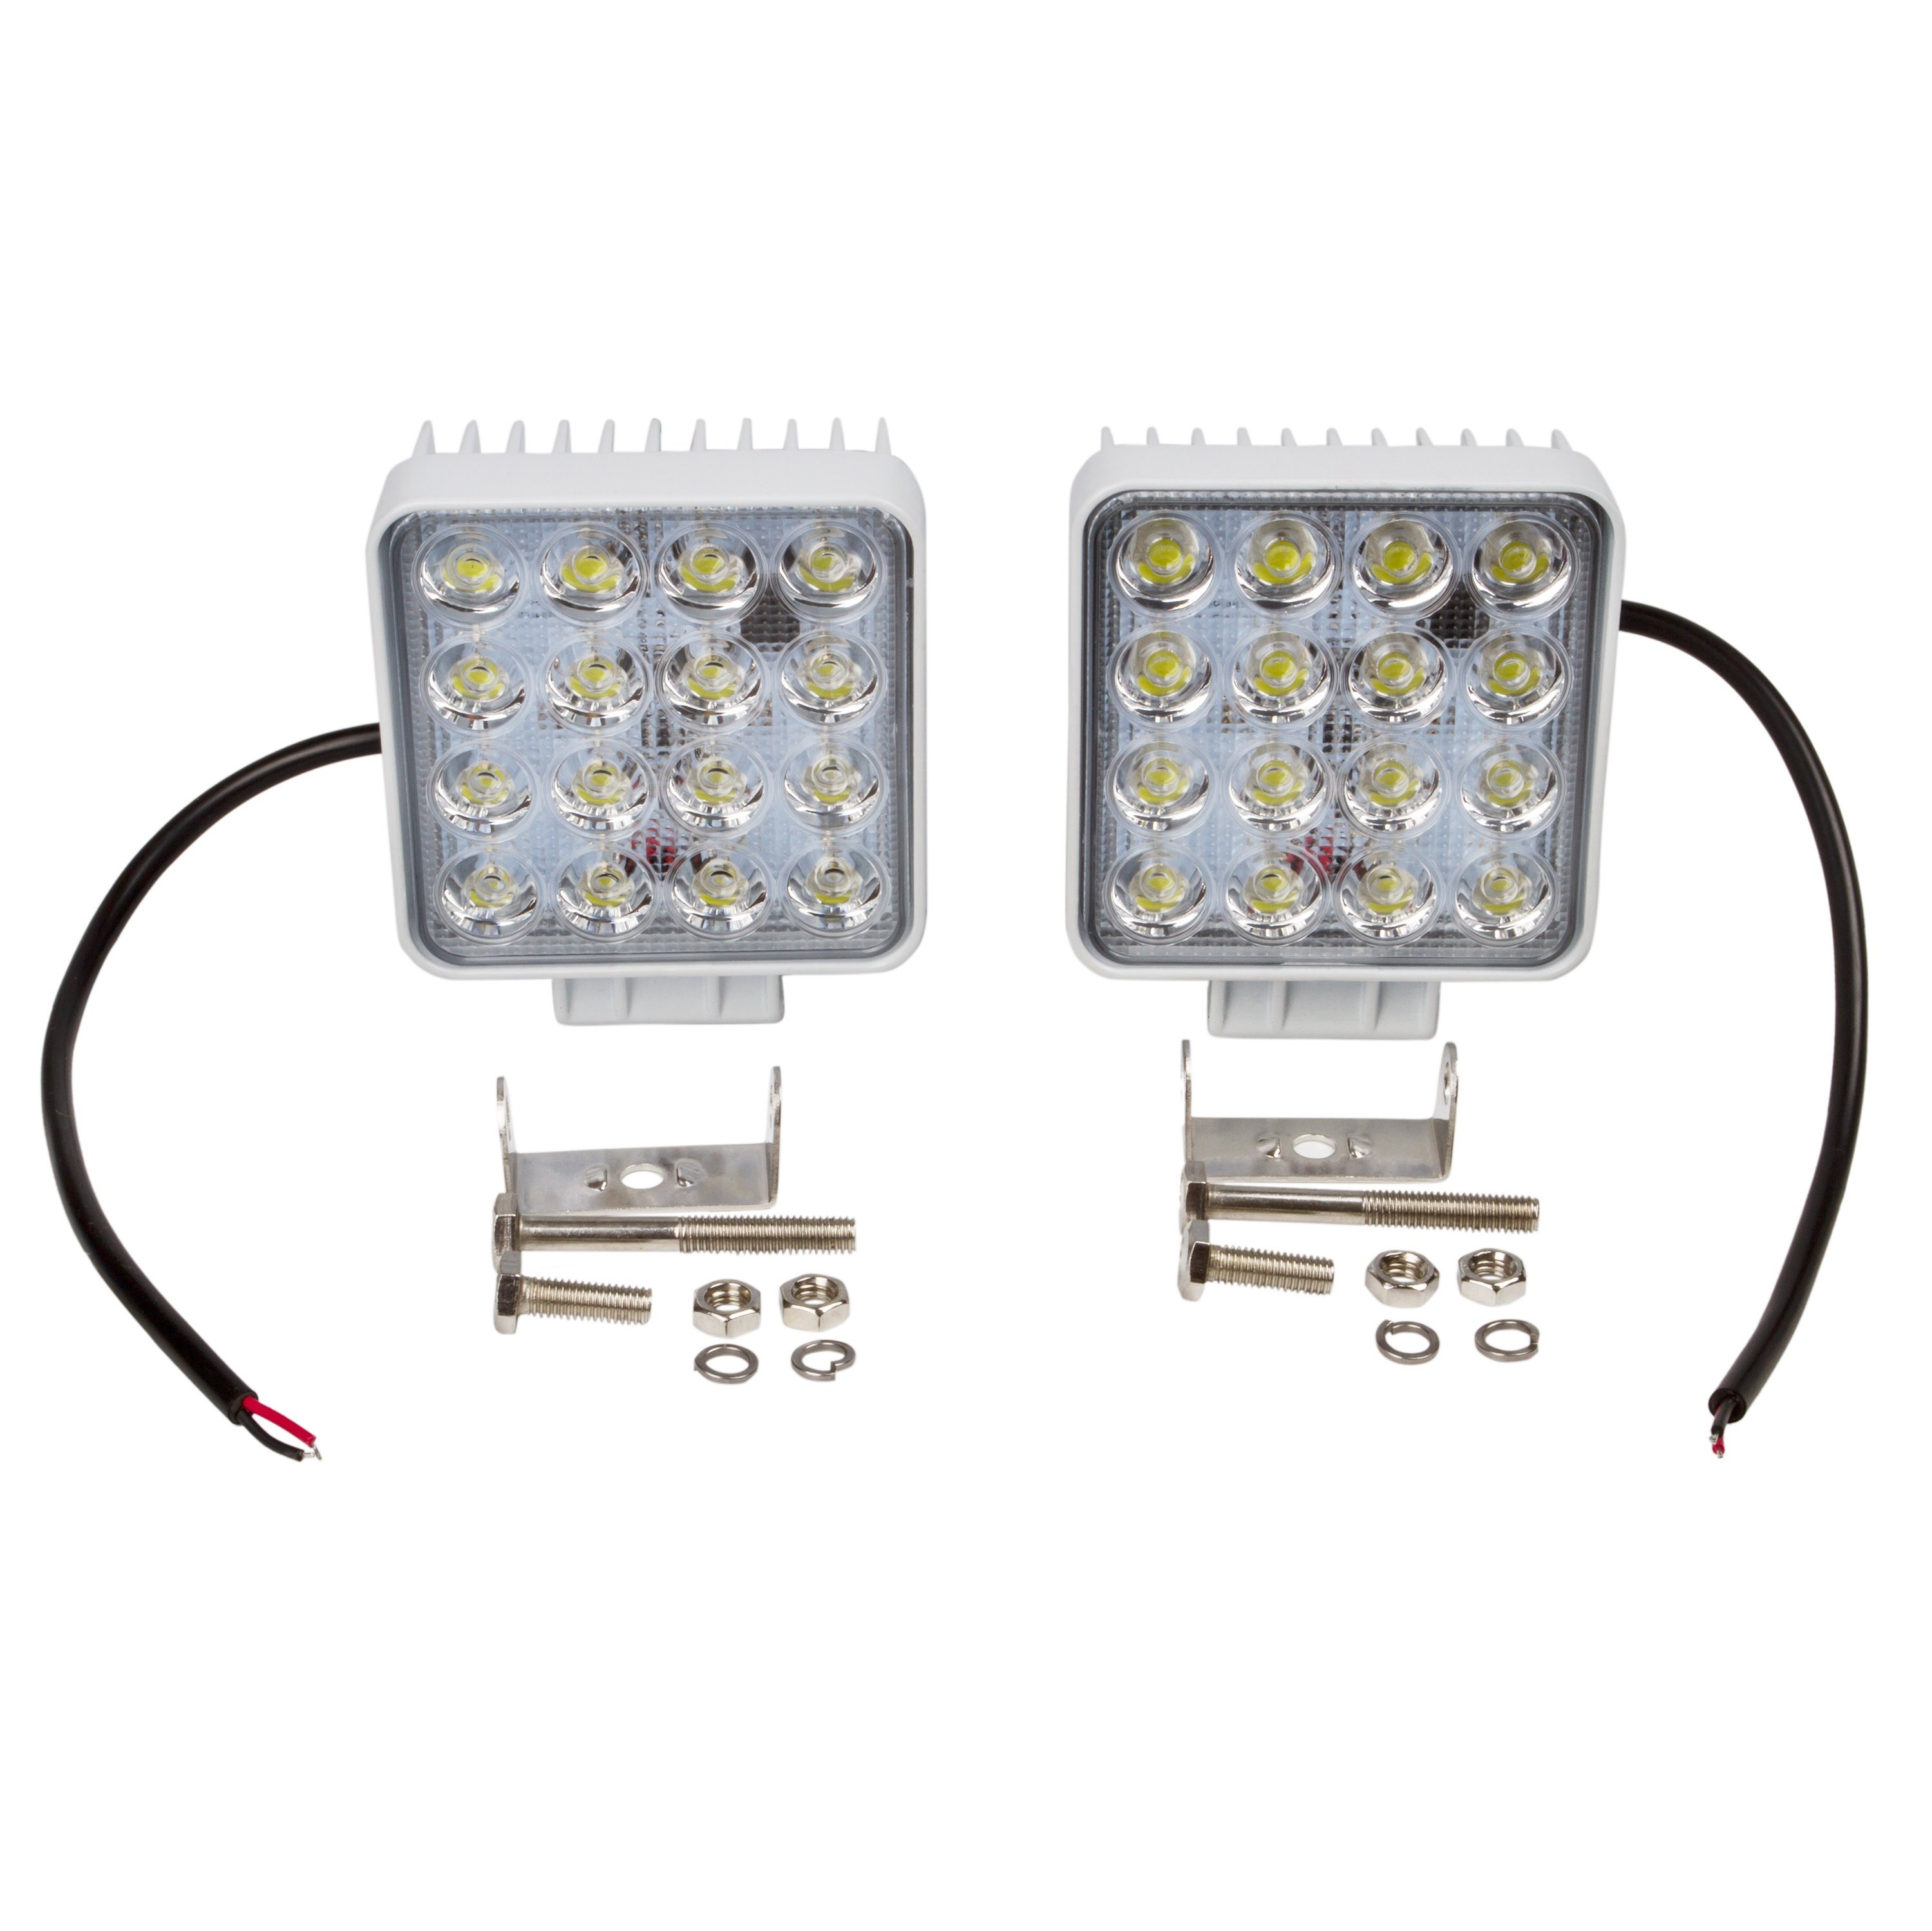 Two Piece Package White Exterior 16x3W 48W High Output Outdoor Lighting Unit